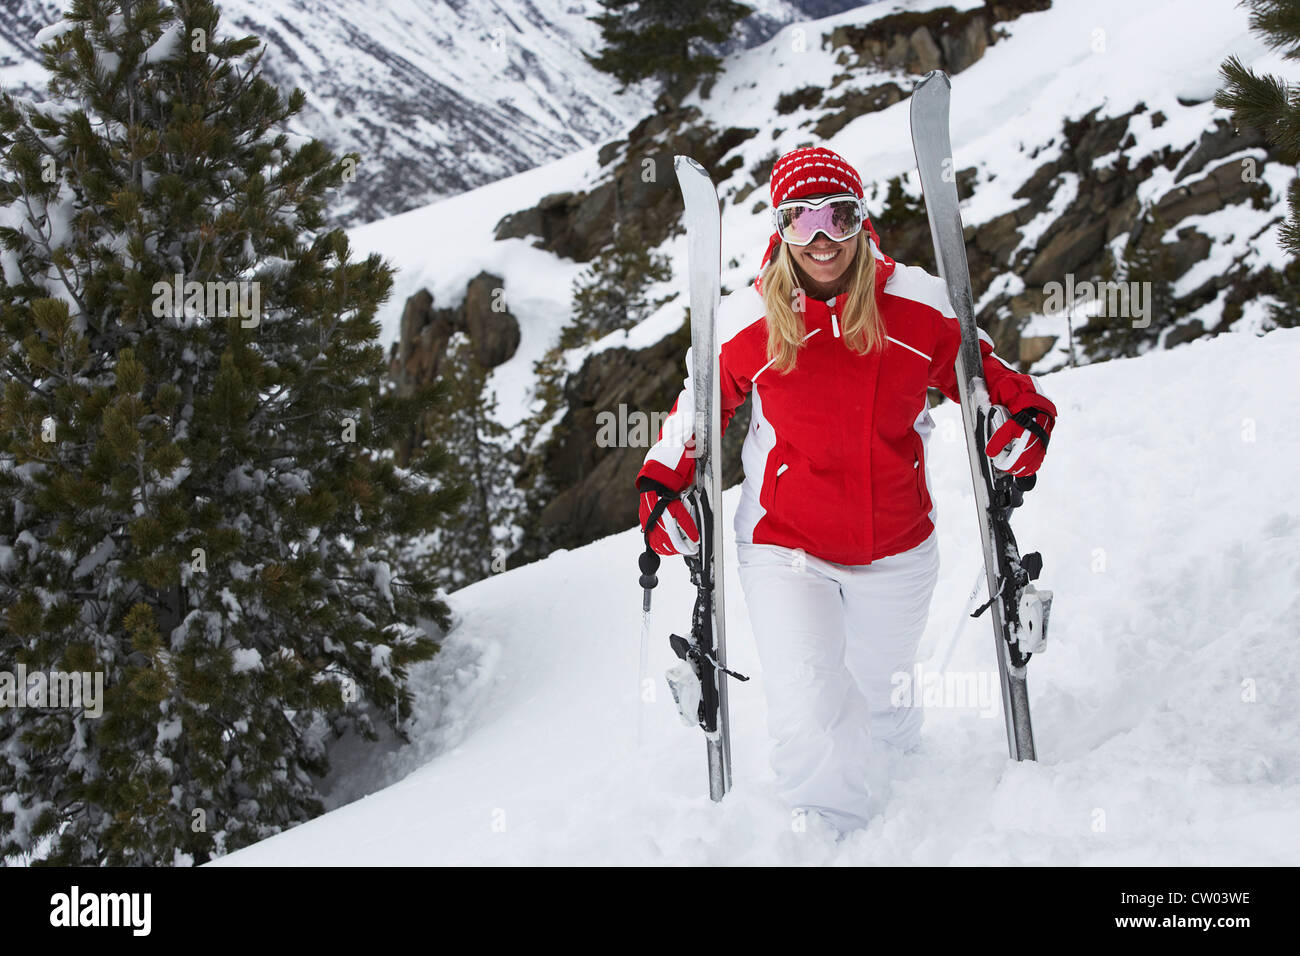 Skier standing on snowy slope - Stock Image